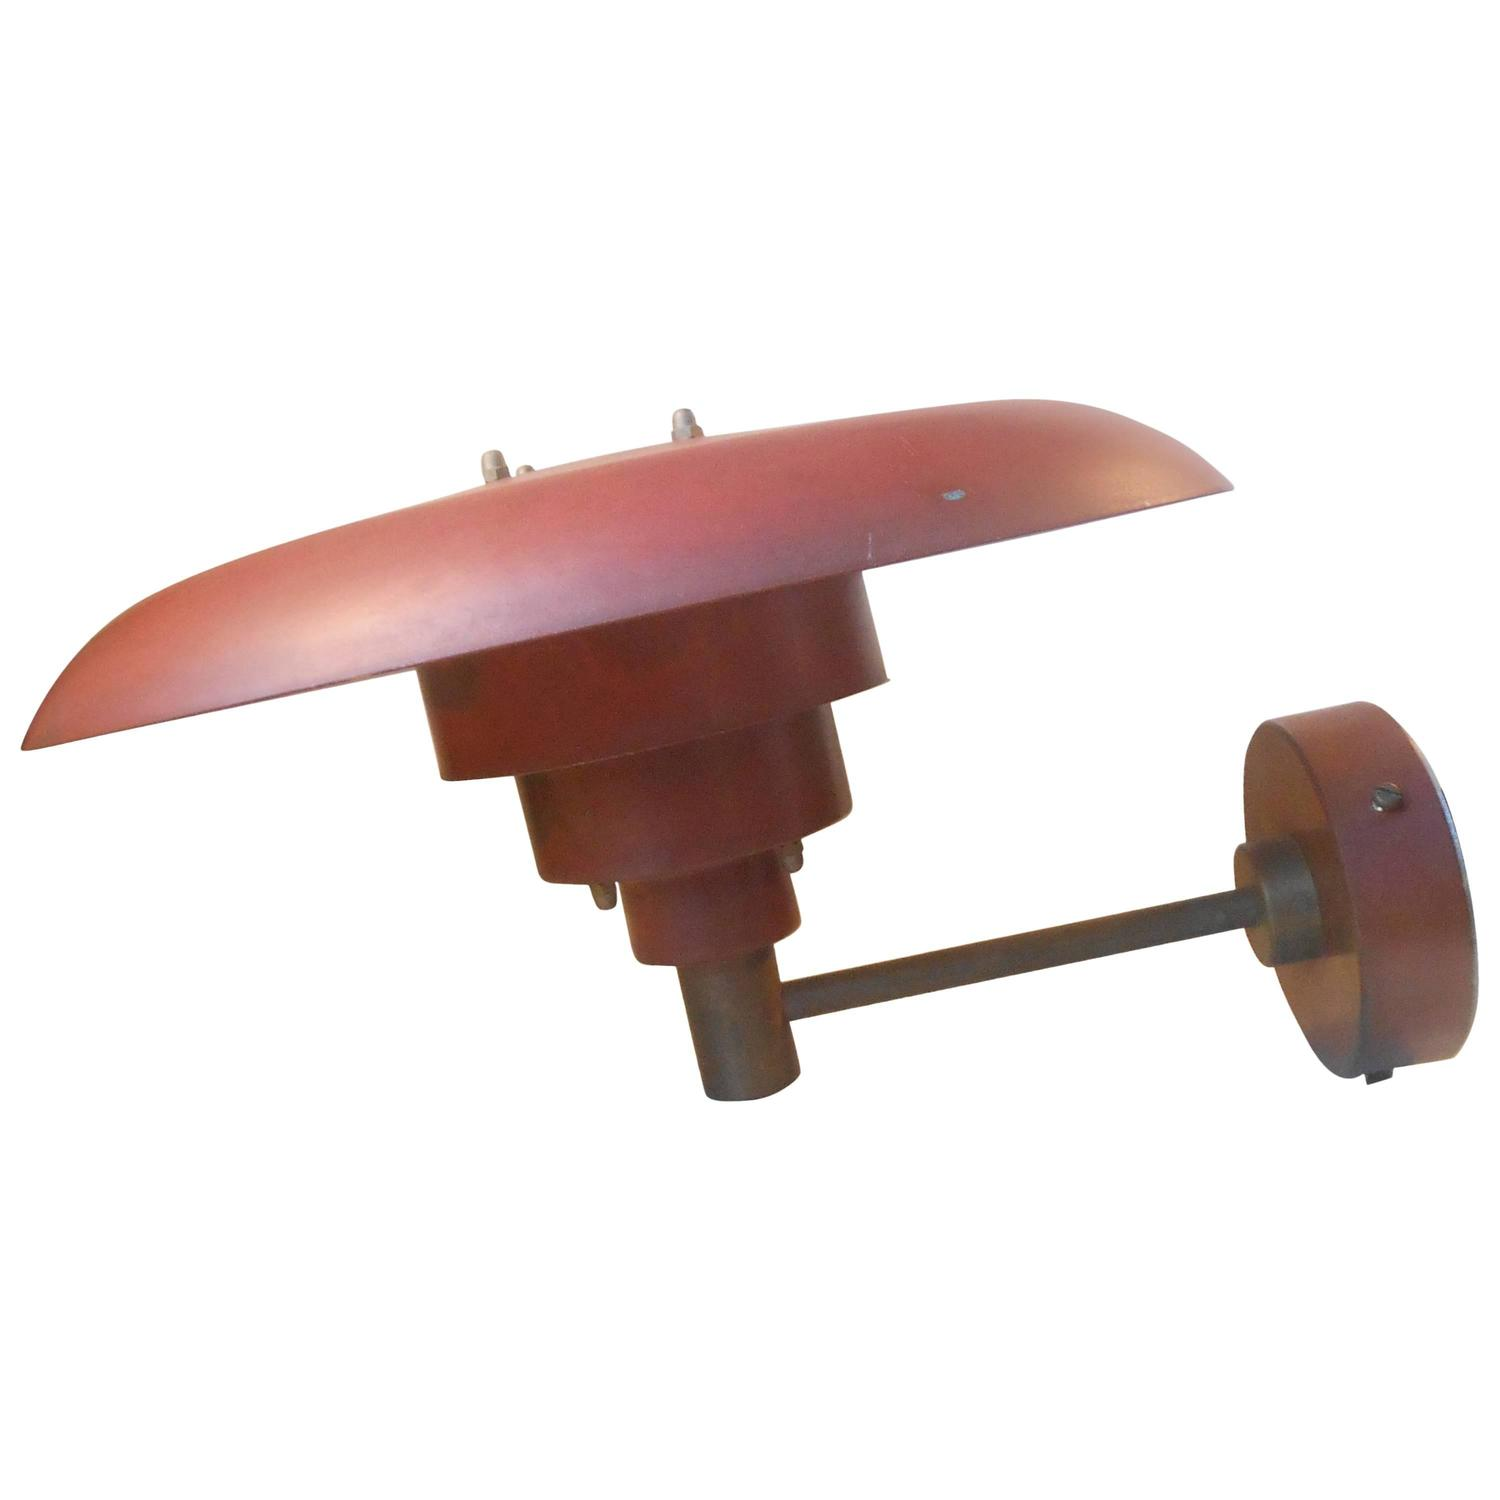 Very Rare Lyfa Outdoor Wall Light in Red Verdigris Copper in the Manner of PH at 1stdibs